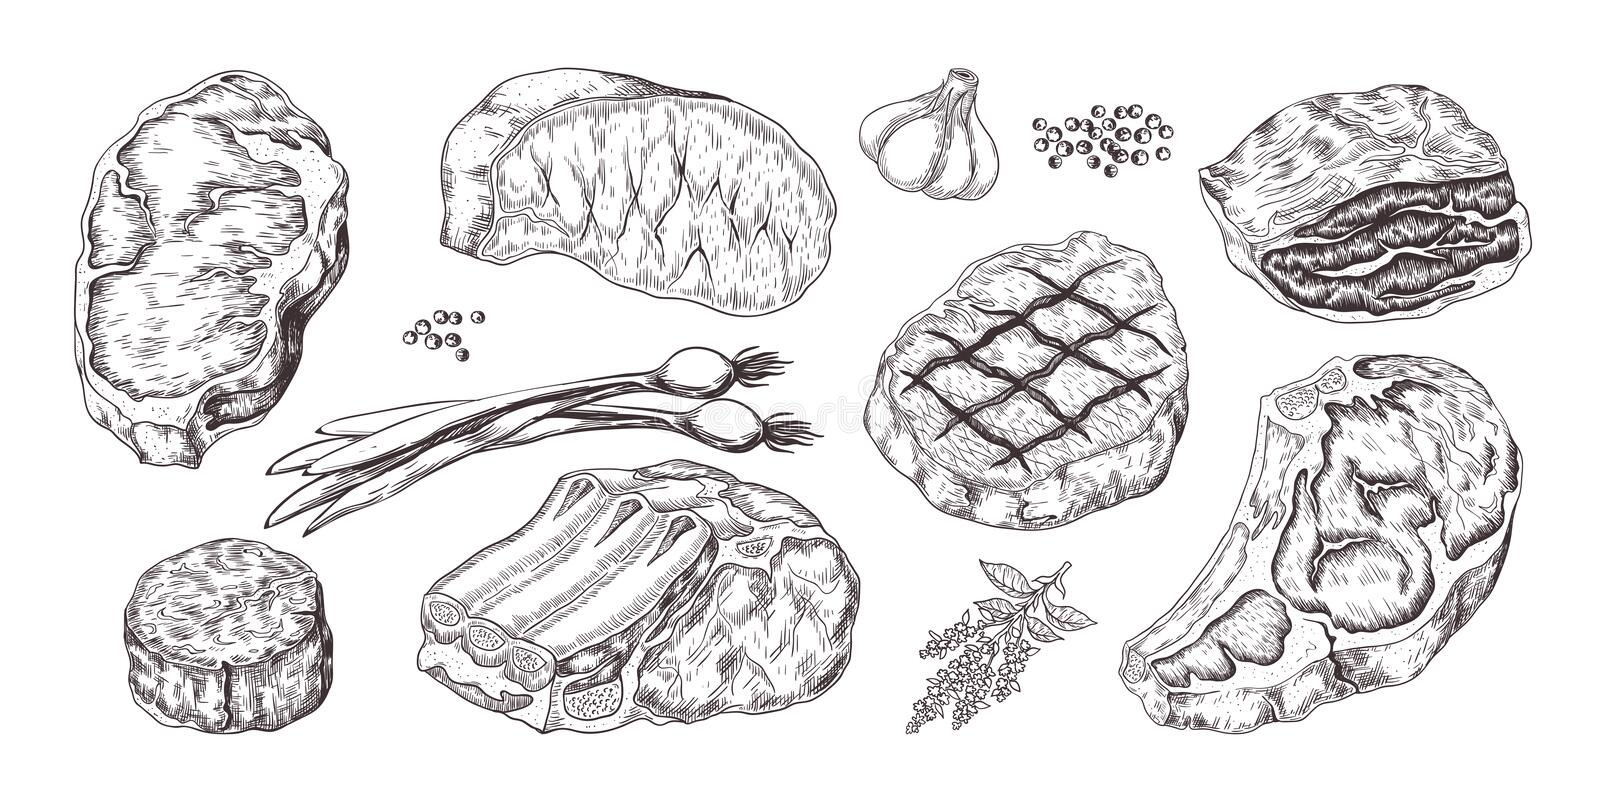 Steak. Vintage sketch with beef and pork chops ribs and fillet, butchery food products with garlic and pepper. Vector. Illustrations hand drawn fillet meat set royalty free illustration